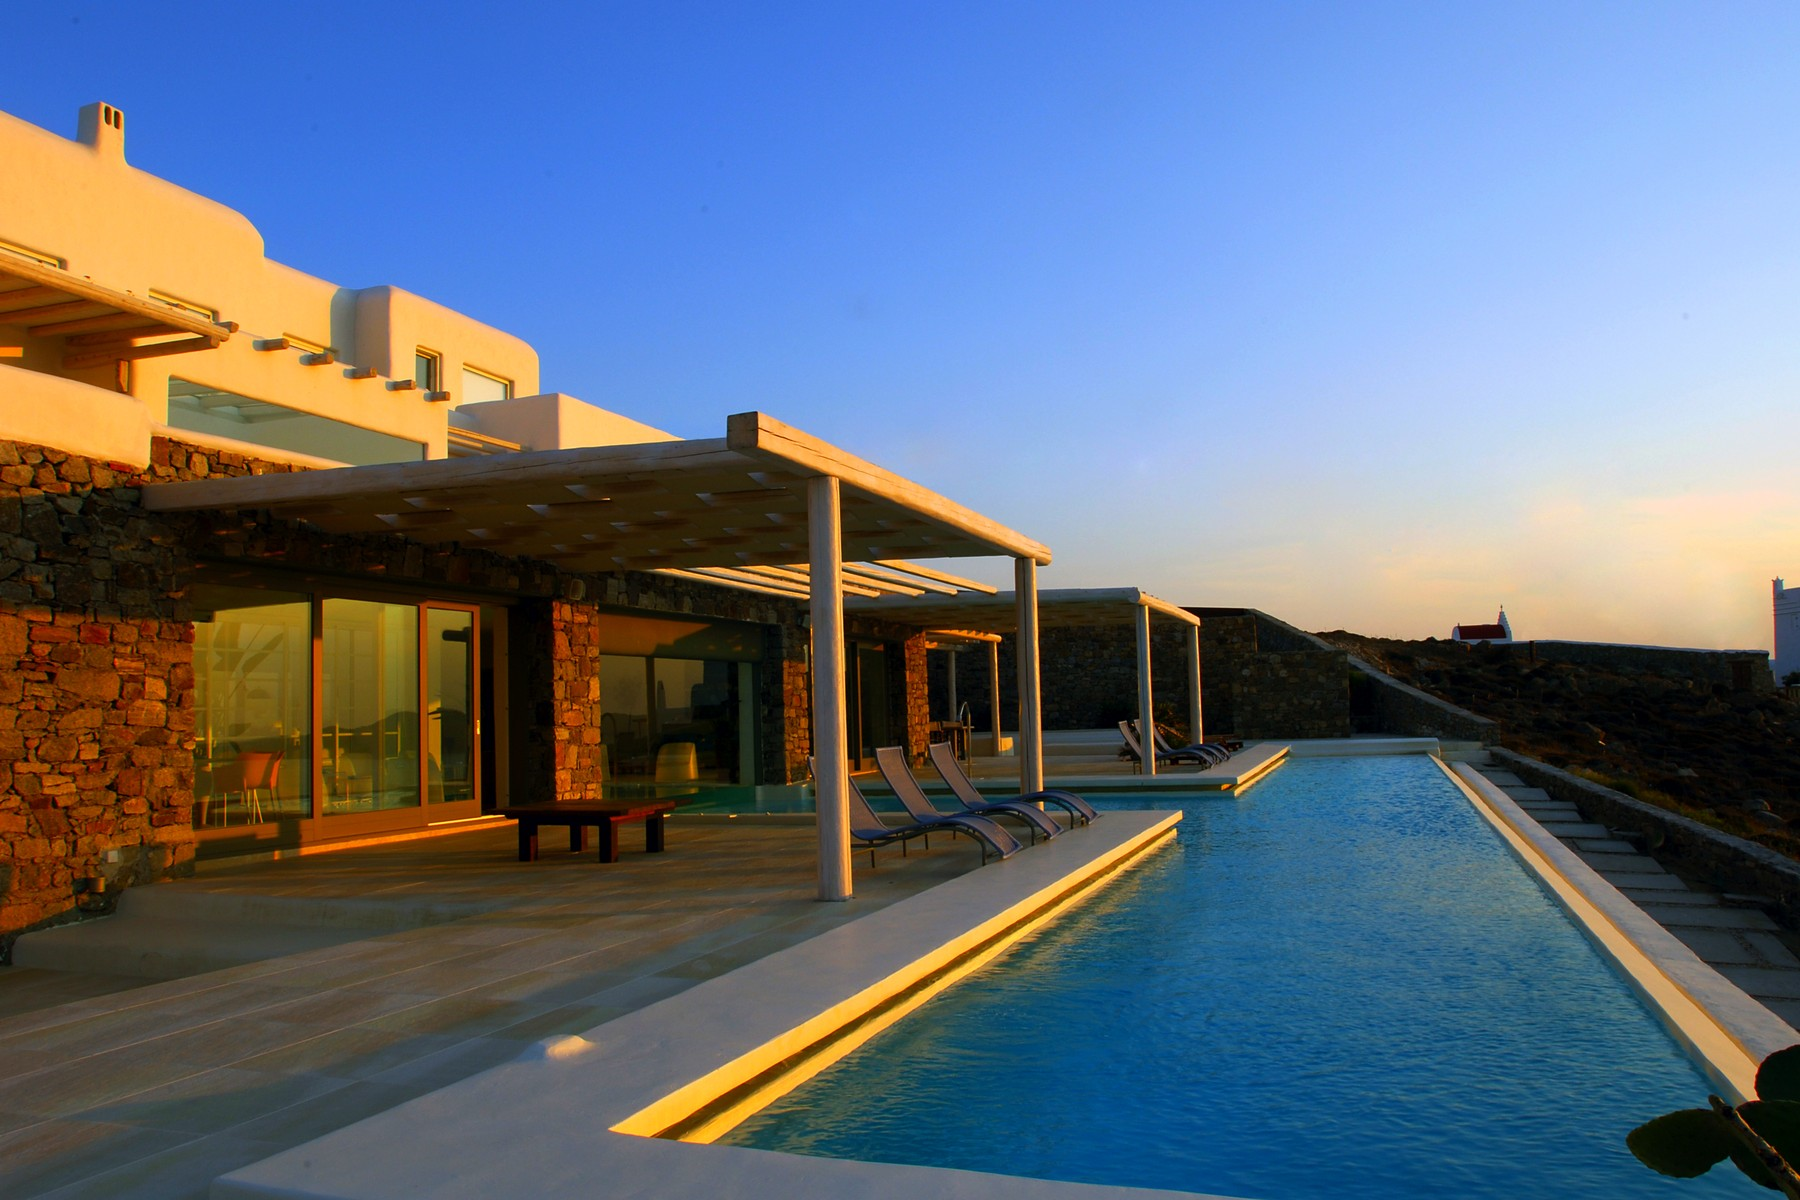 Single Family Home for Sale at Jewel by the Sea Mykonos, Southern Aegean, 84600 Greece